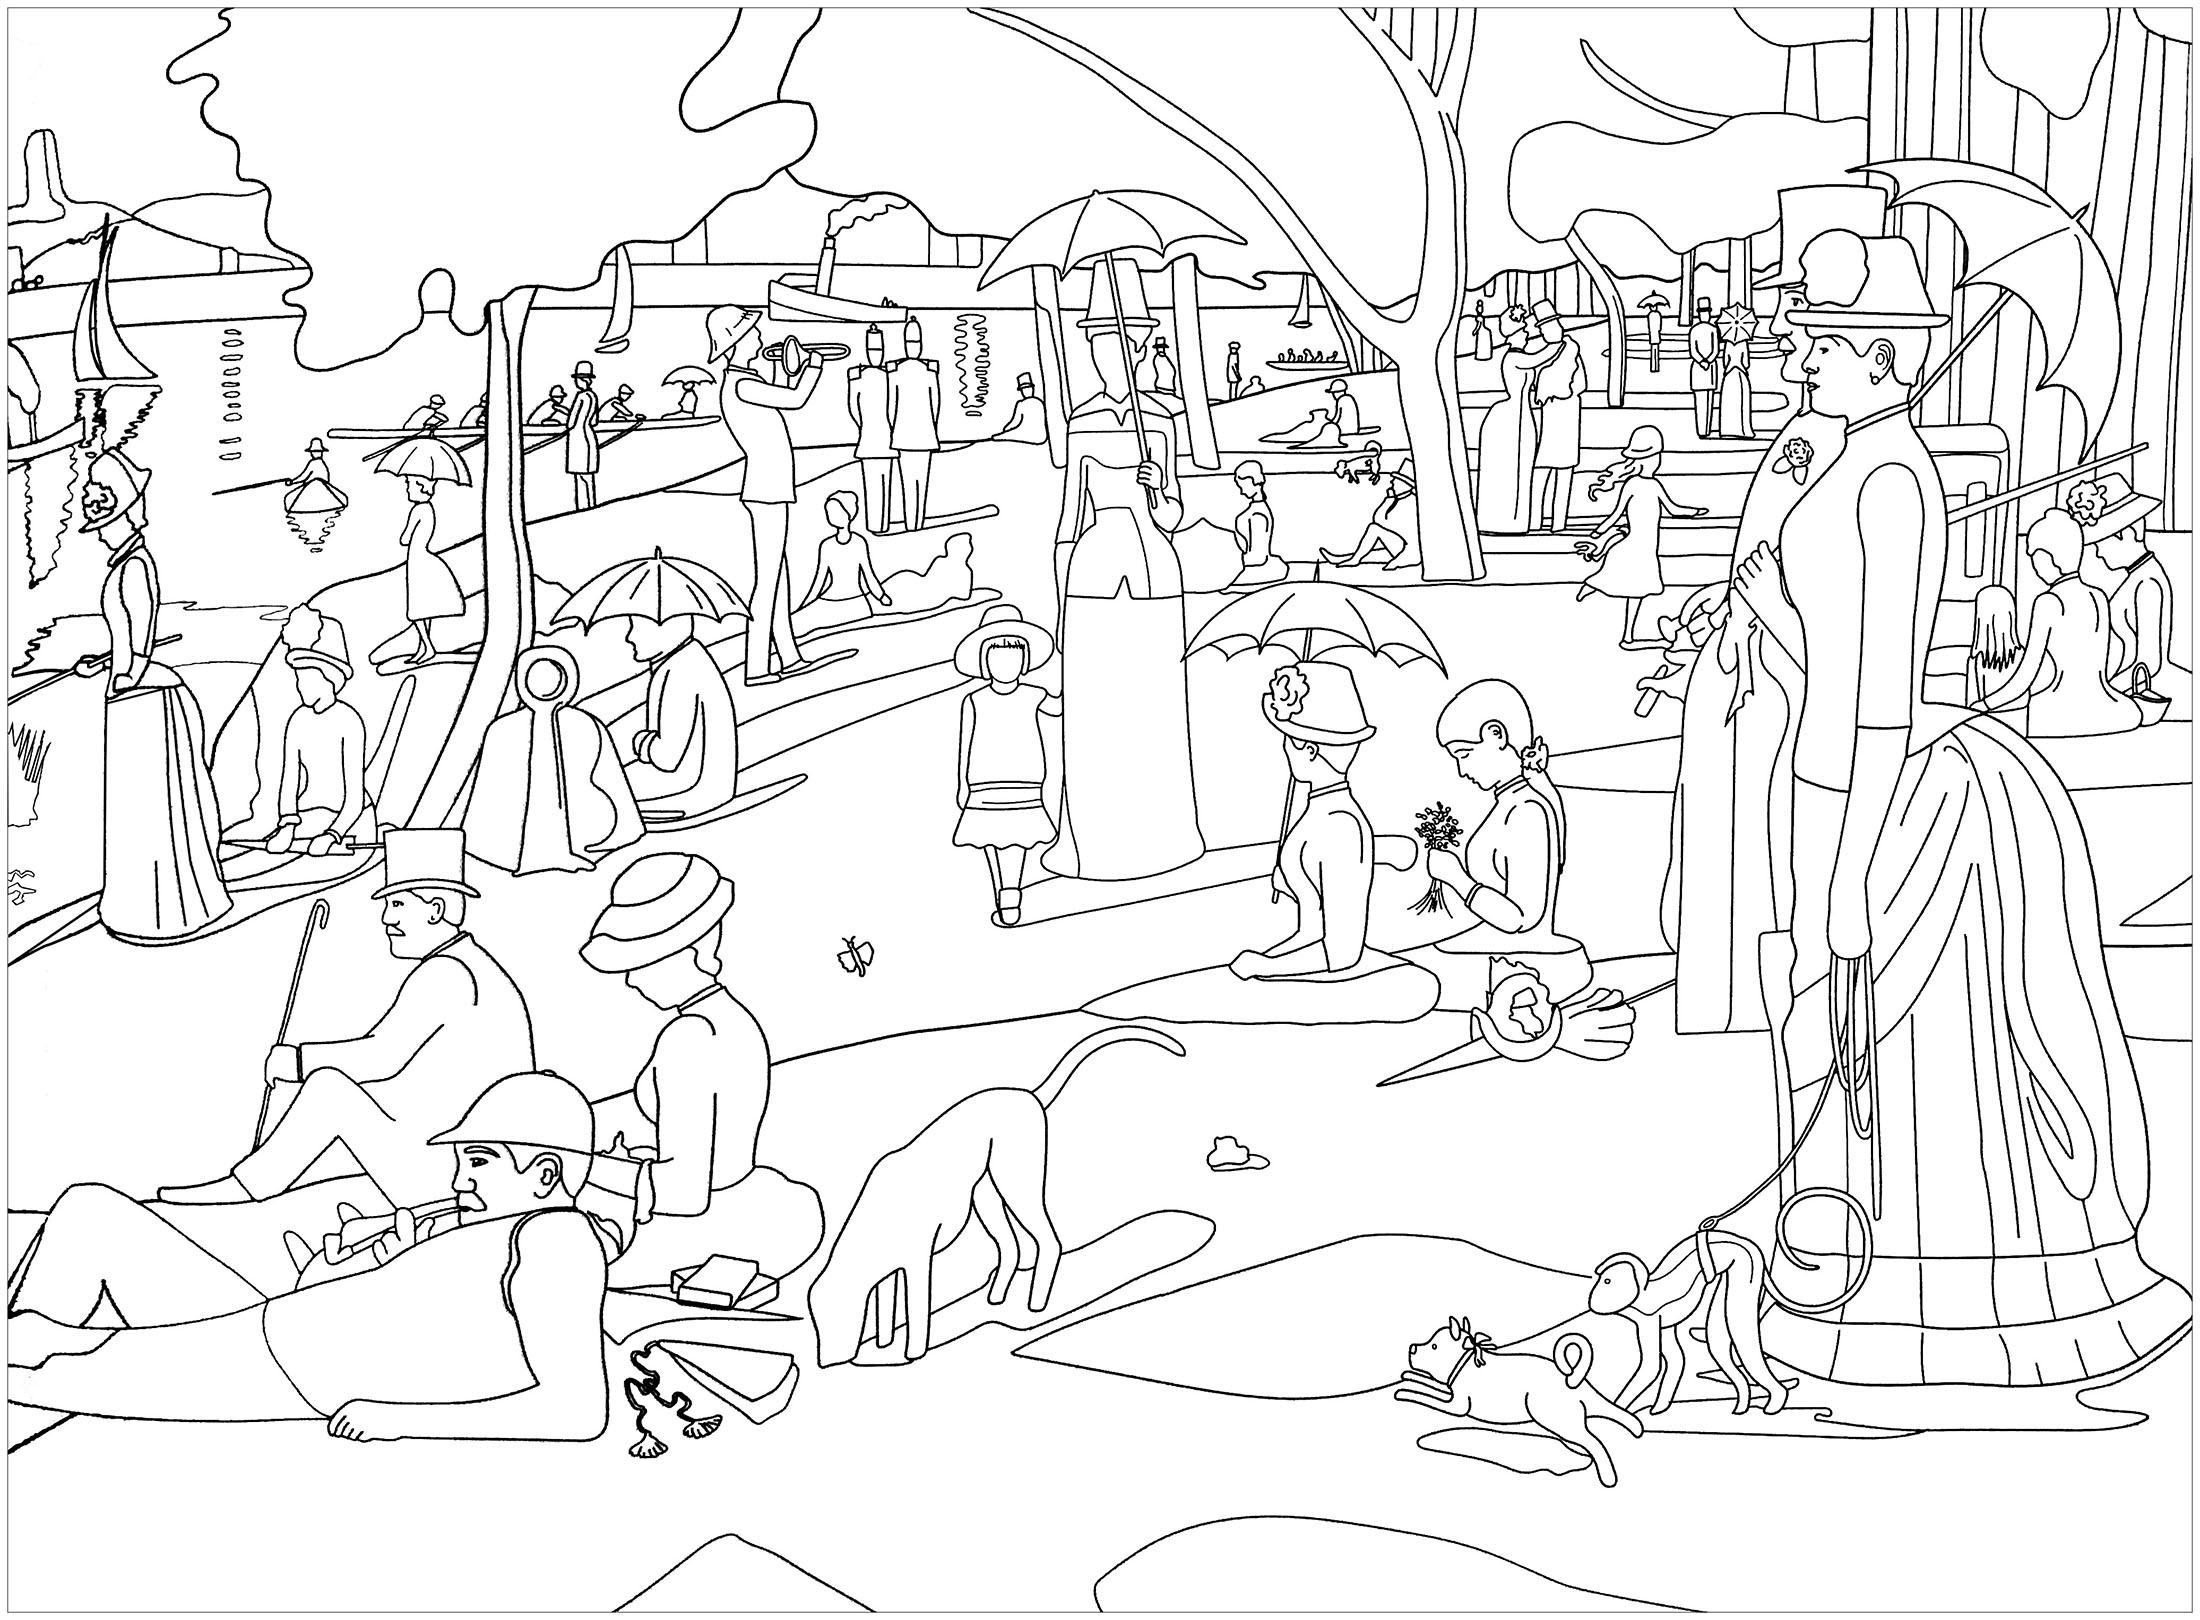 Coloring page inspired by a master piece by George Seurat : A Sunday on La Grande Jatte